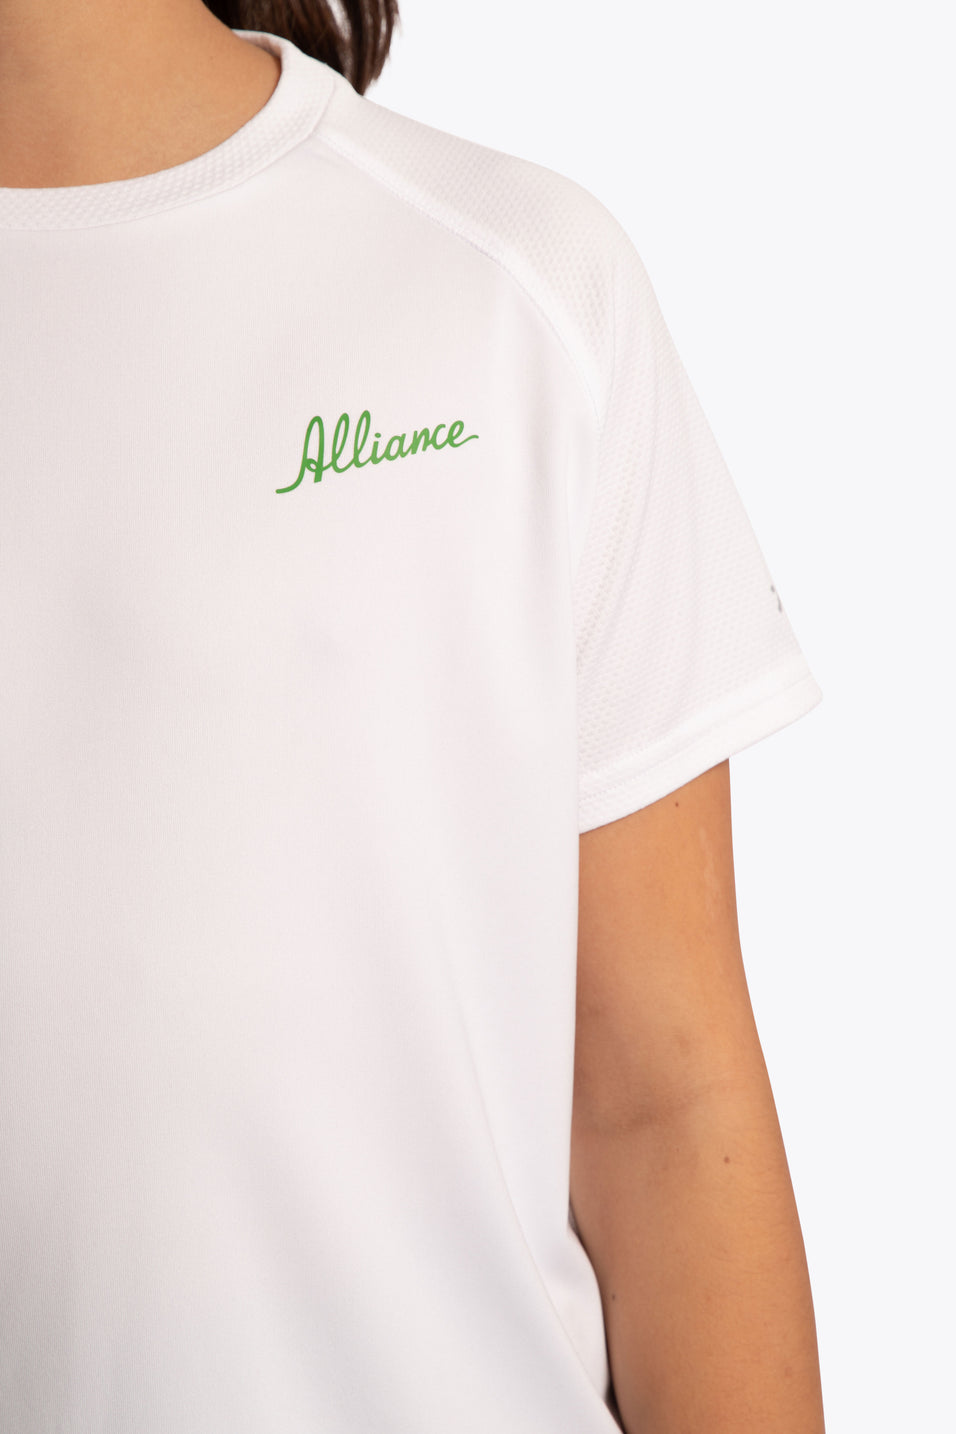 Alliance Deshi Training Tee - White